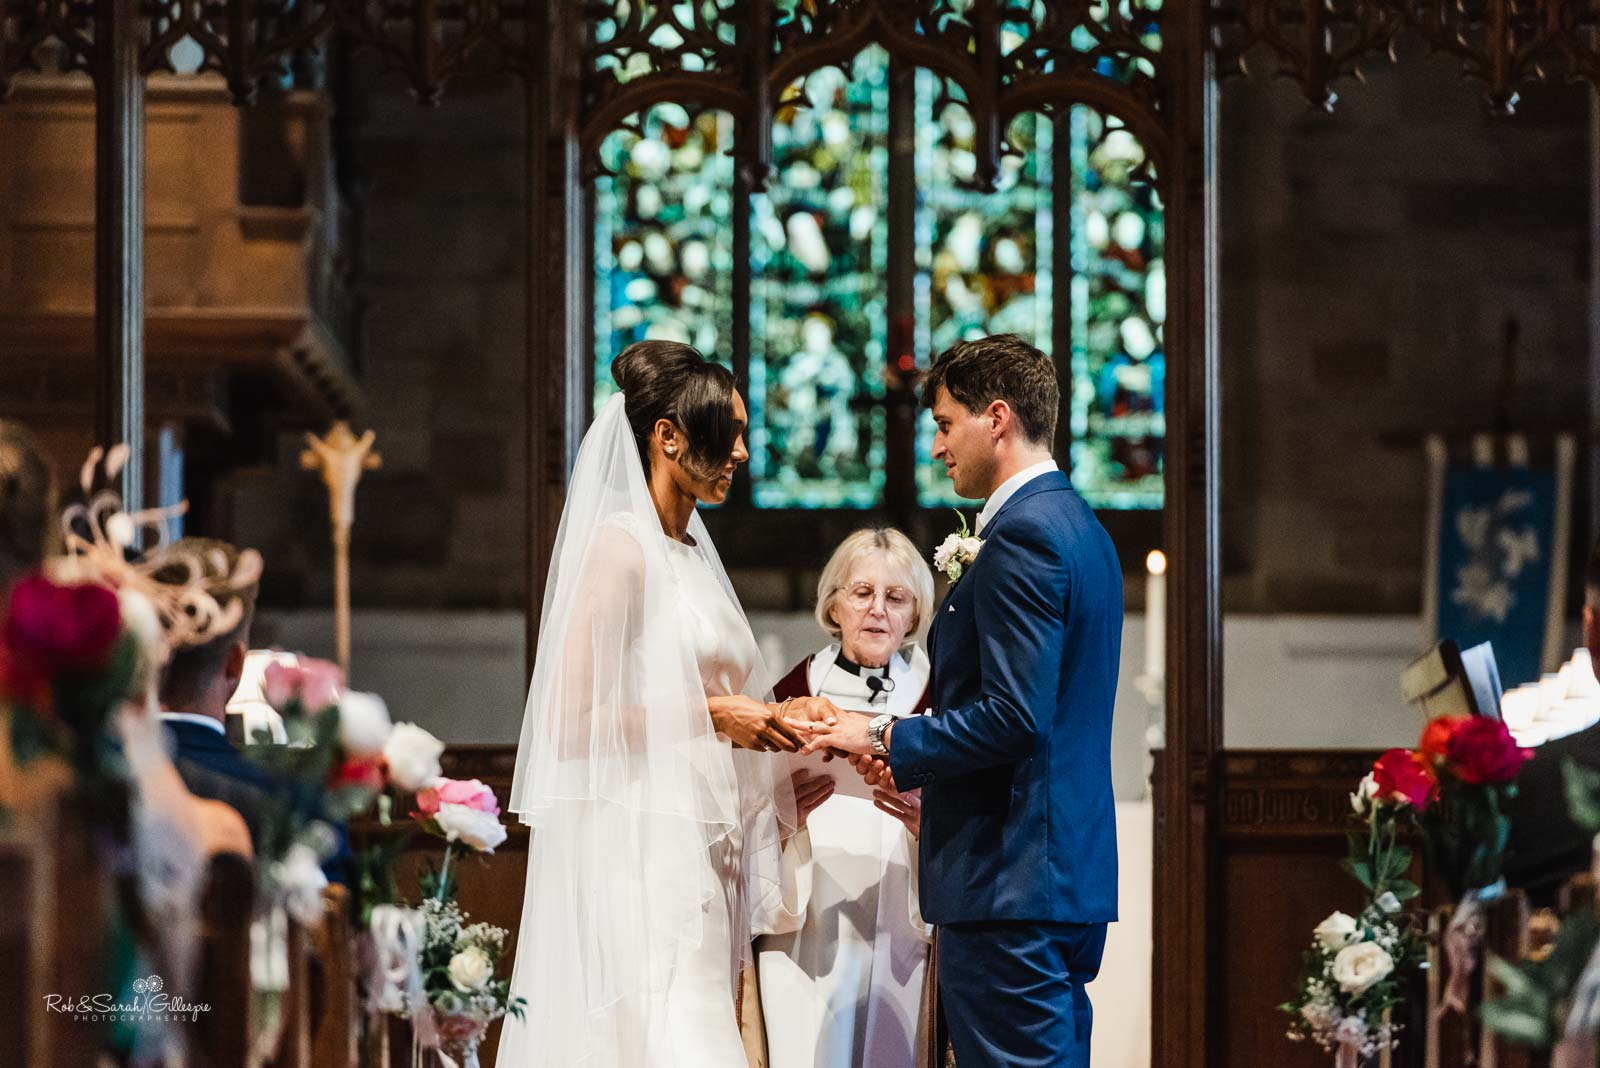 Wedding ceremony in Hampton-in-Arden church